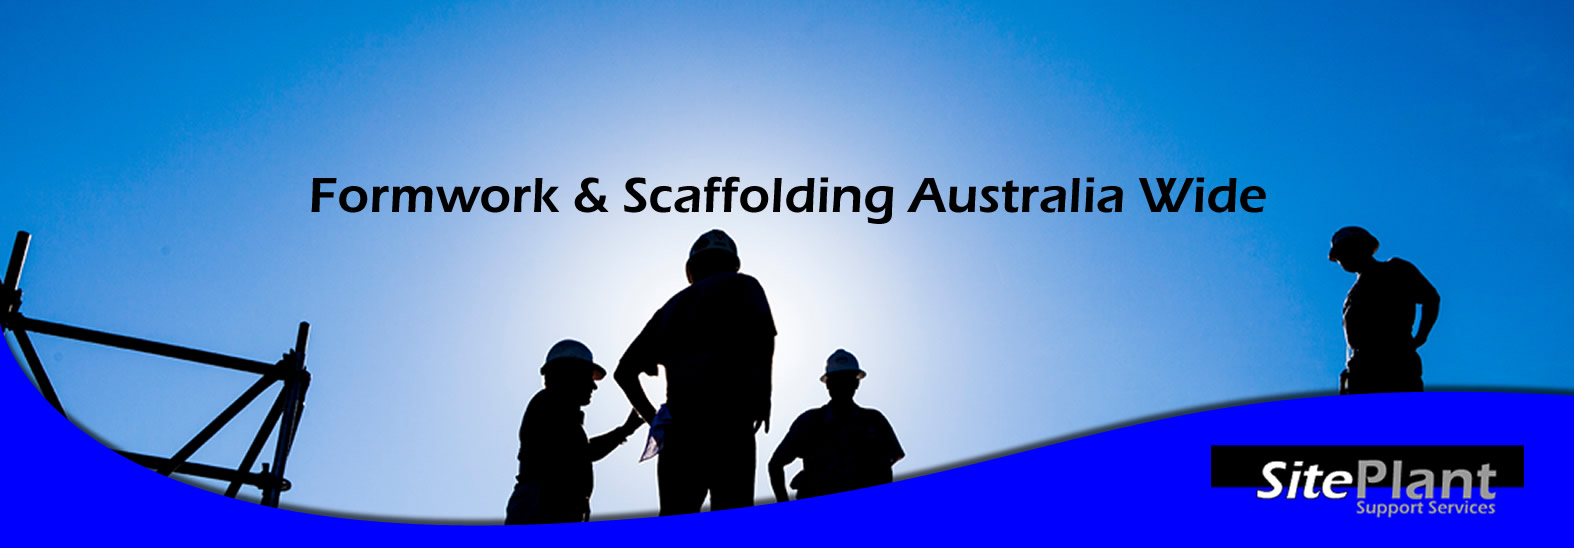 SitePlant caters for Australia and New Zealand, and specializes in all types of  Formwork and scaffolding sales,  we are Formwork and Scaffold Suppliers and have formwork and Scaffolding systems available, we also handle Plant and Machinery sales,  safety screens and site equipment